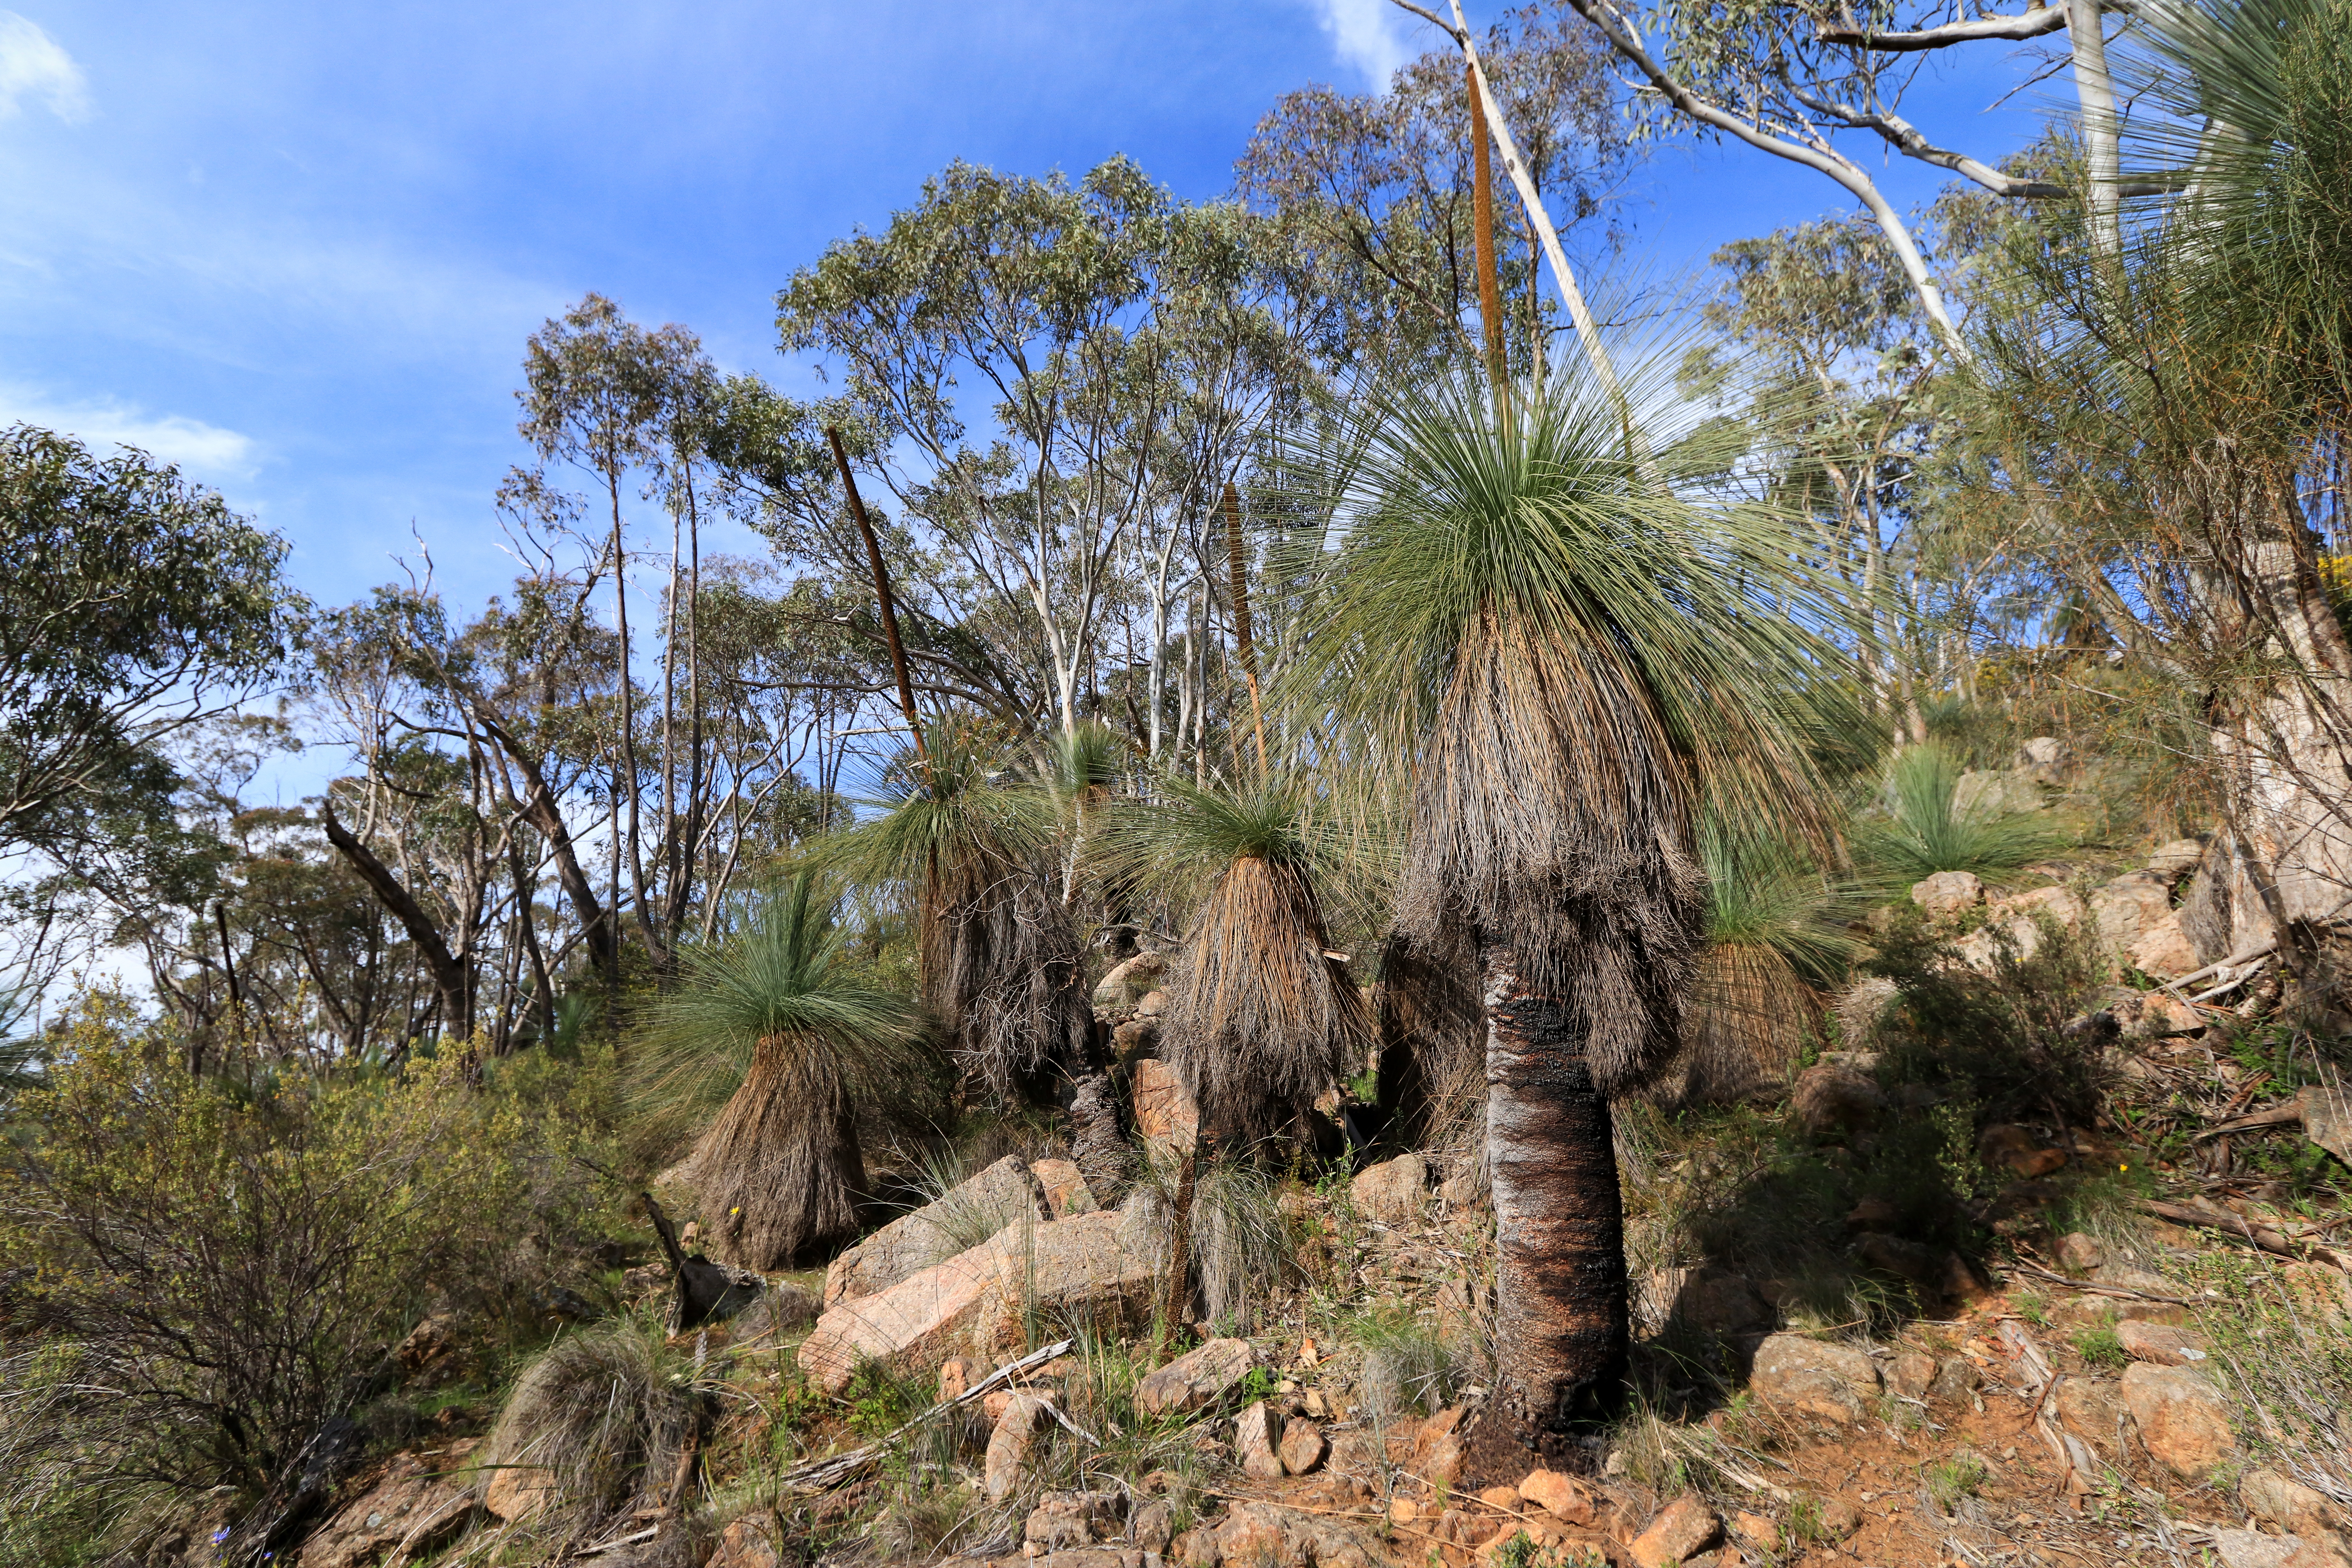 Group of grass trees on dry north facing slope